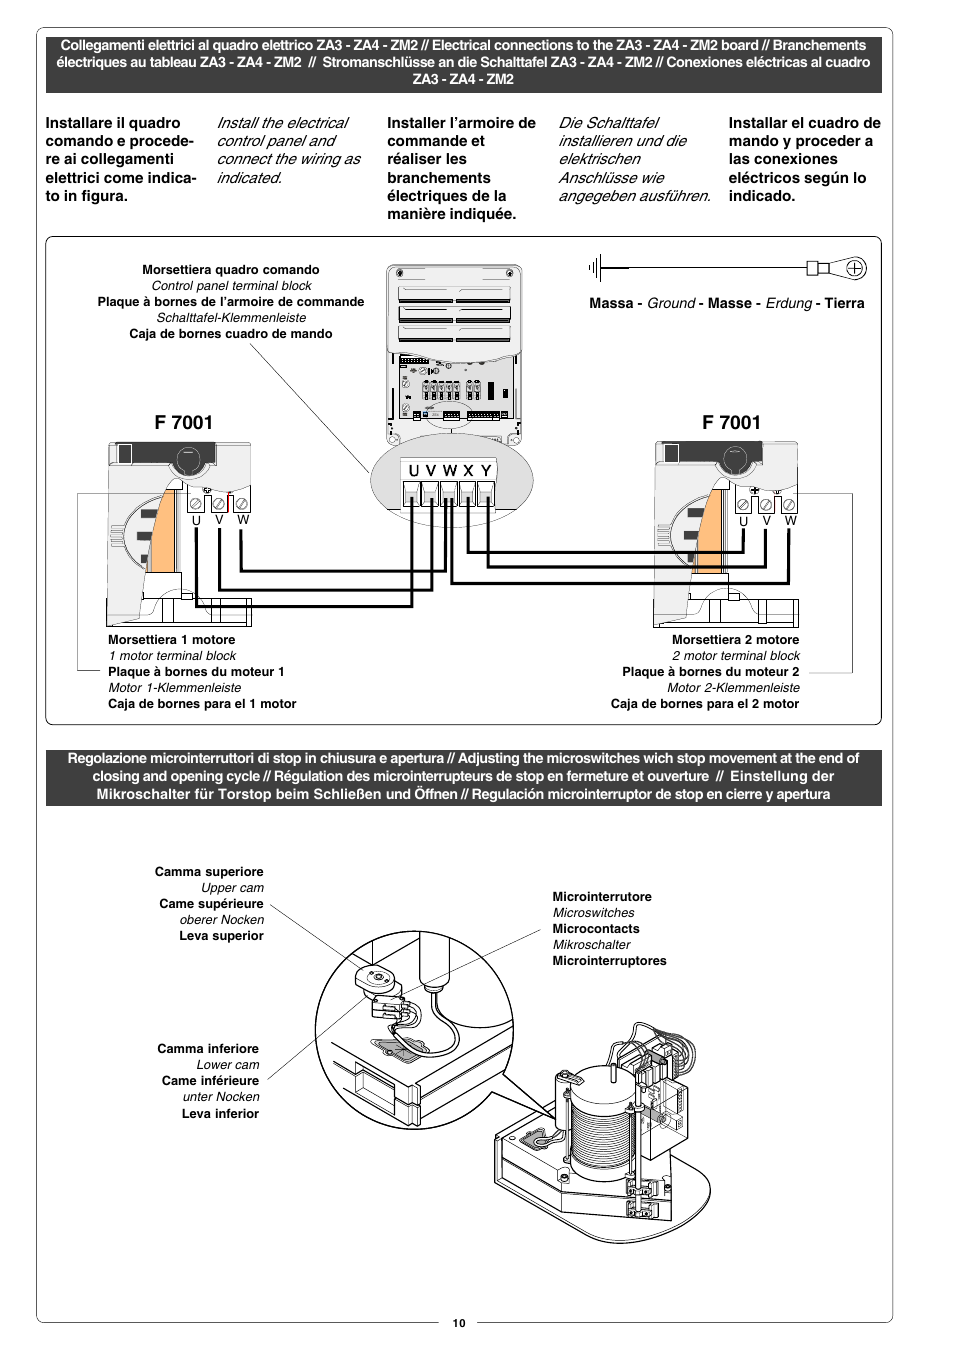 F 7001   CAME Fast User Manual   Page 10 / 24